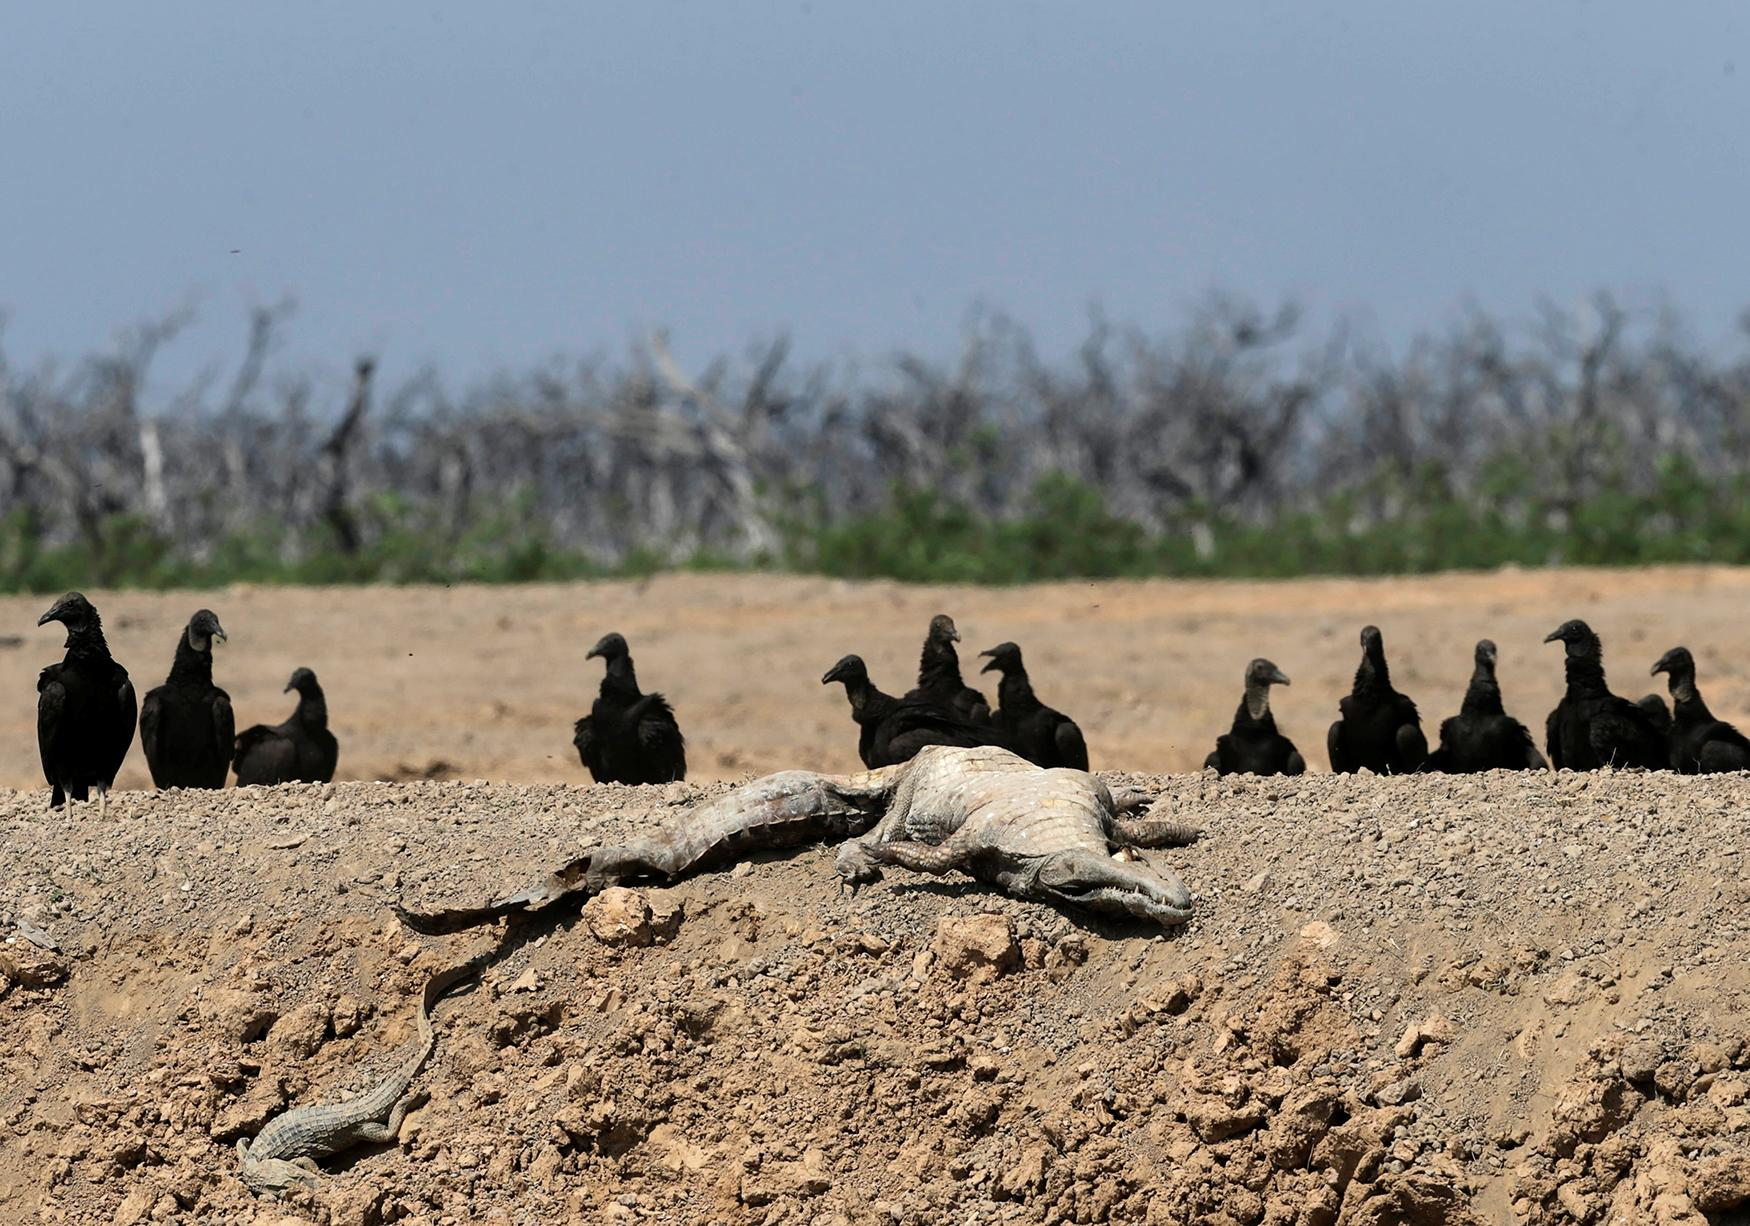 <p>Vultures sit next to the carcass of a yacare caiman at a dried-up artificial pond at the Agropil ranch in Boqueron, Paraguay on Aug. 14, 2016. (Photo: Jorge Adorno/Reuters) </p>